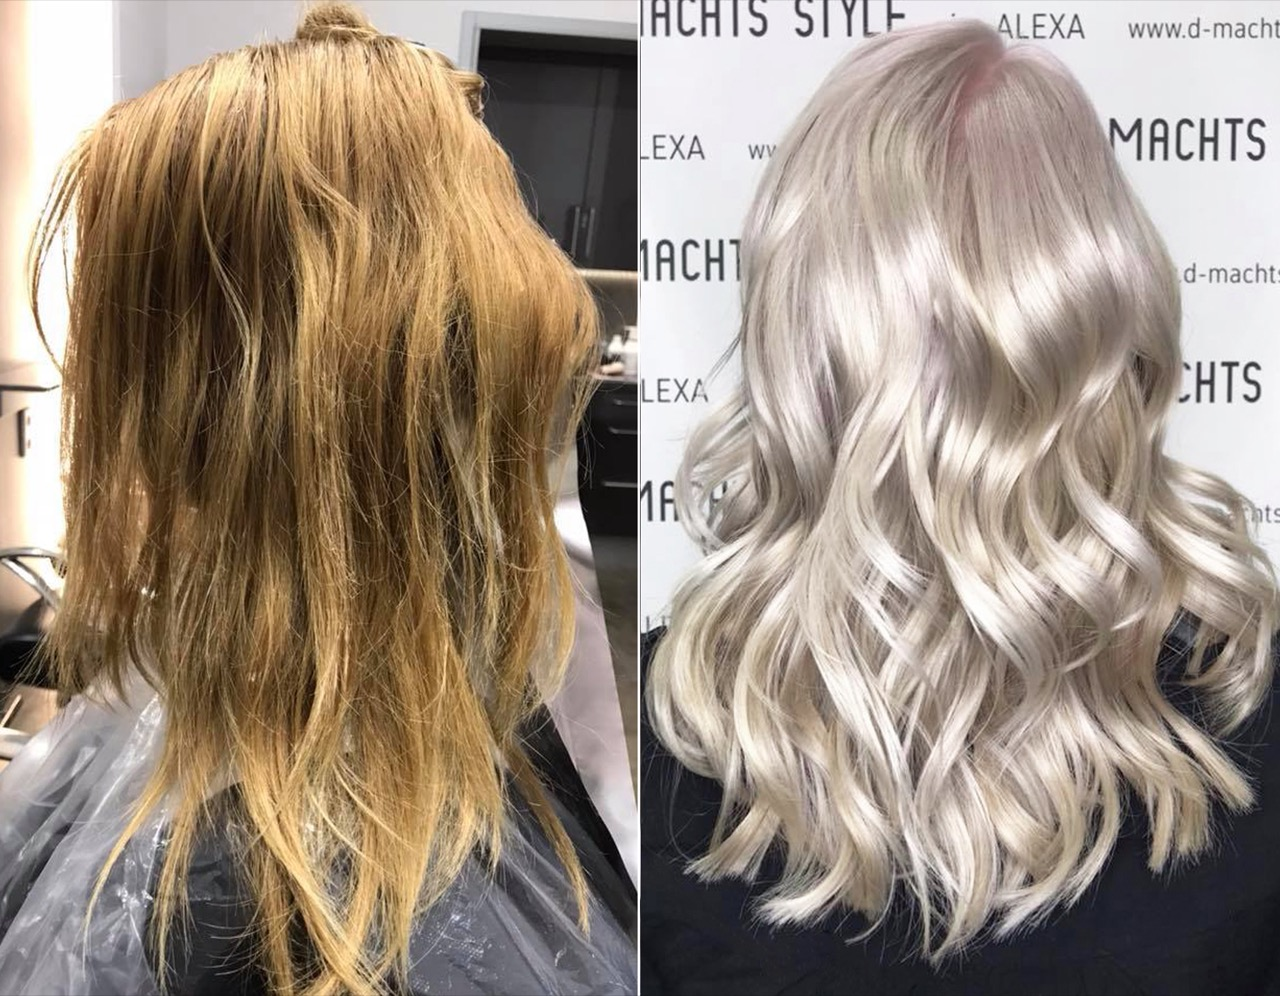 Top Frisuren Trends 2019 Haarfarben Haarschnitte Und Stylings